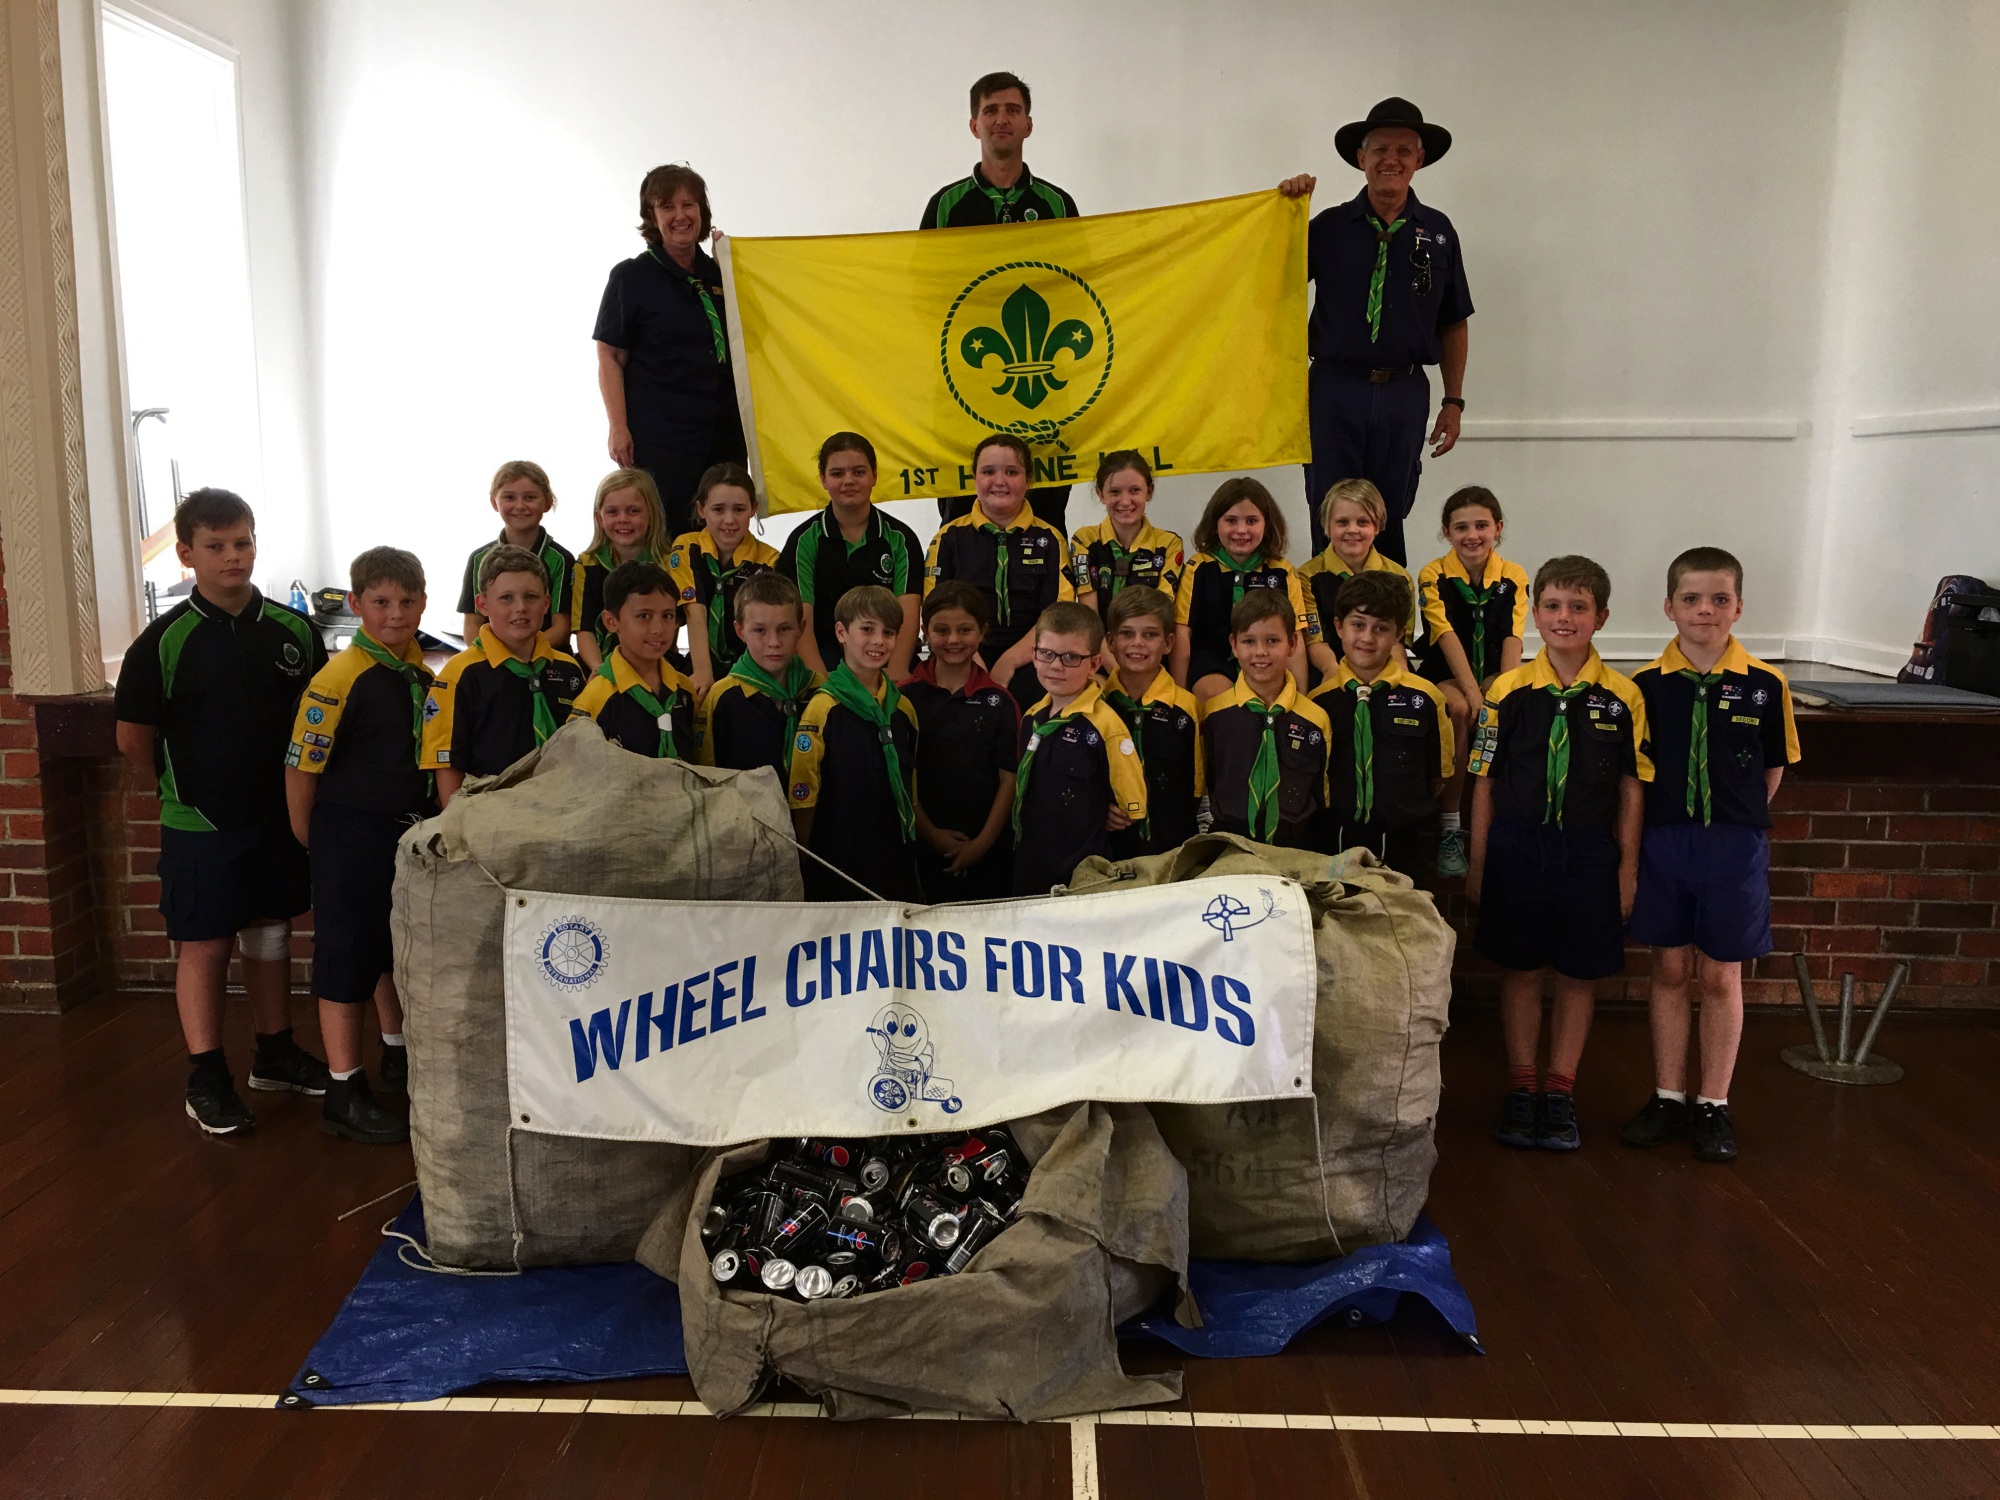 1st Herne Hill Cub Scouts with their collection of cans, which will be sold for recycling and the money used to build wheelchairs.